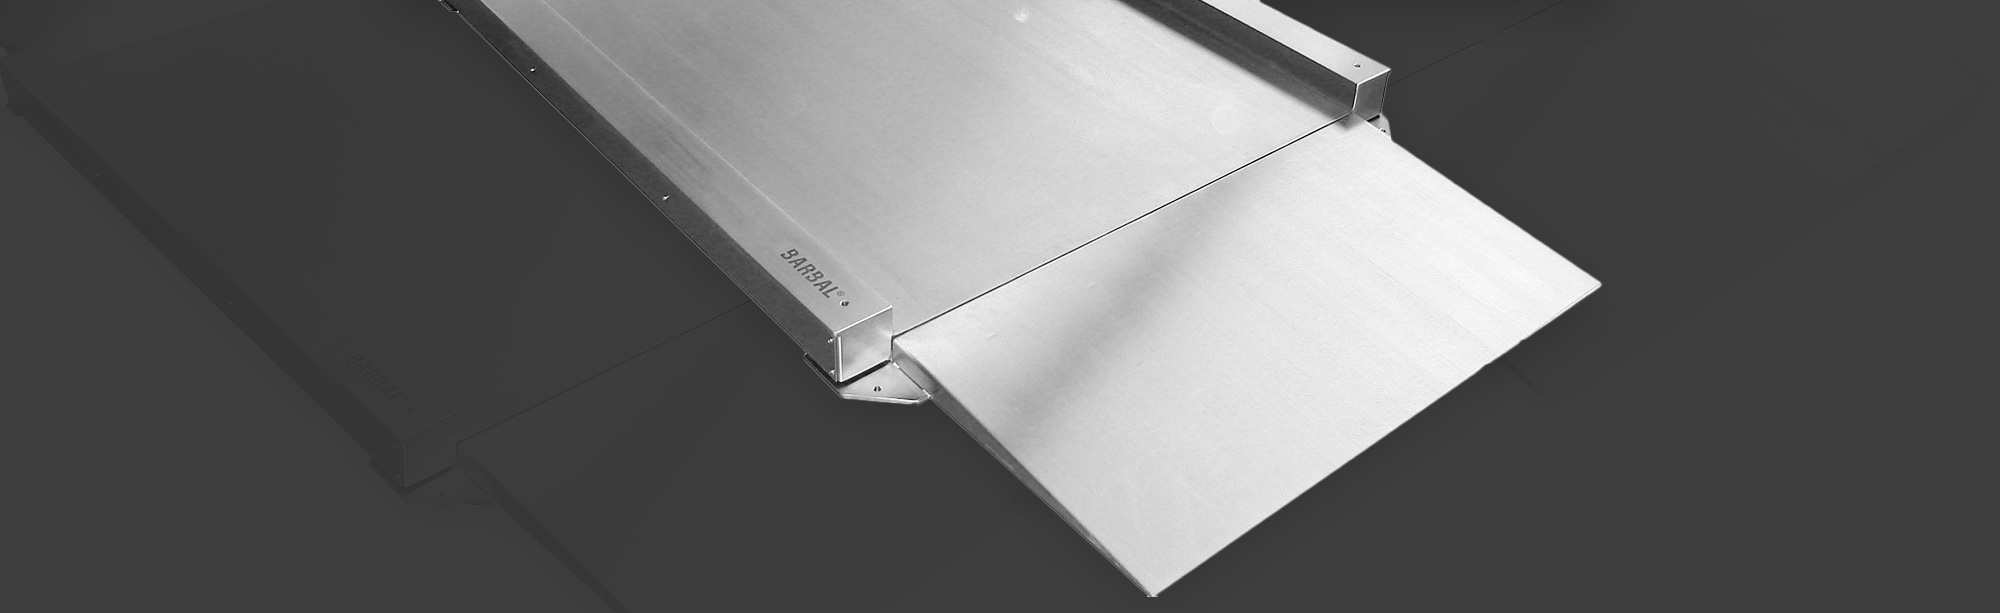 Benefits of using stainless-steel industrial scales